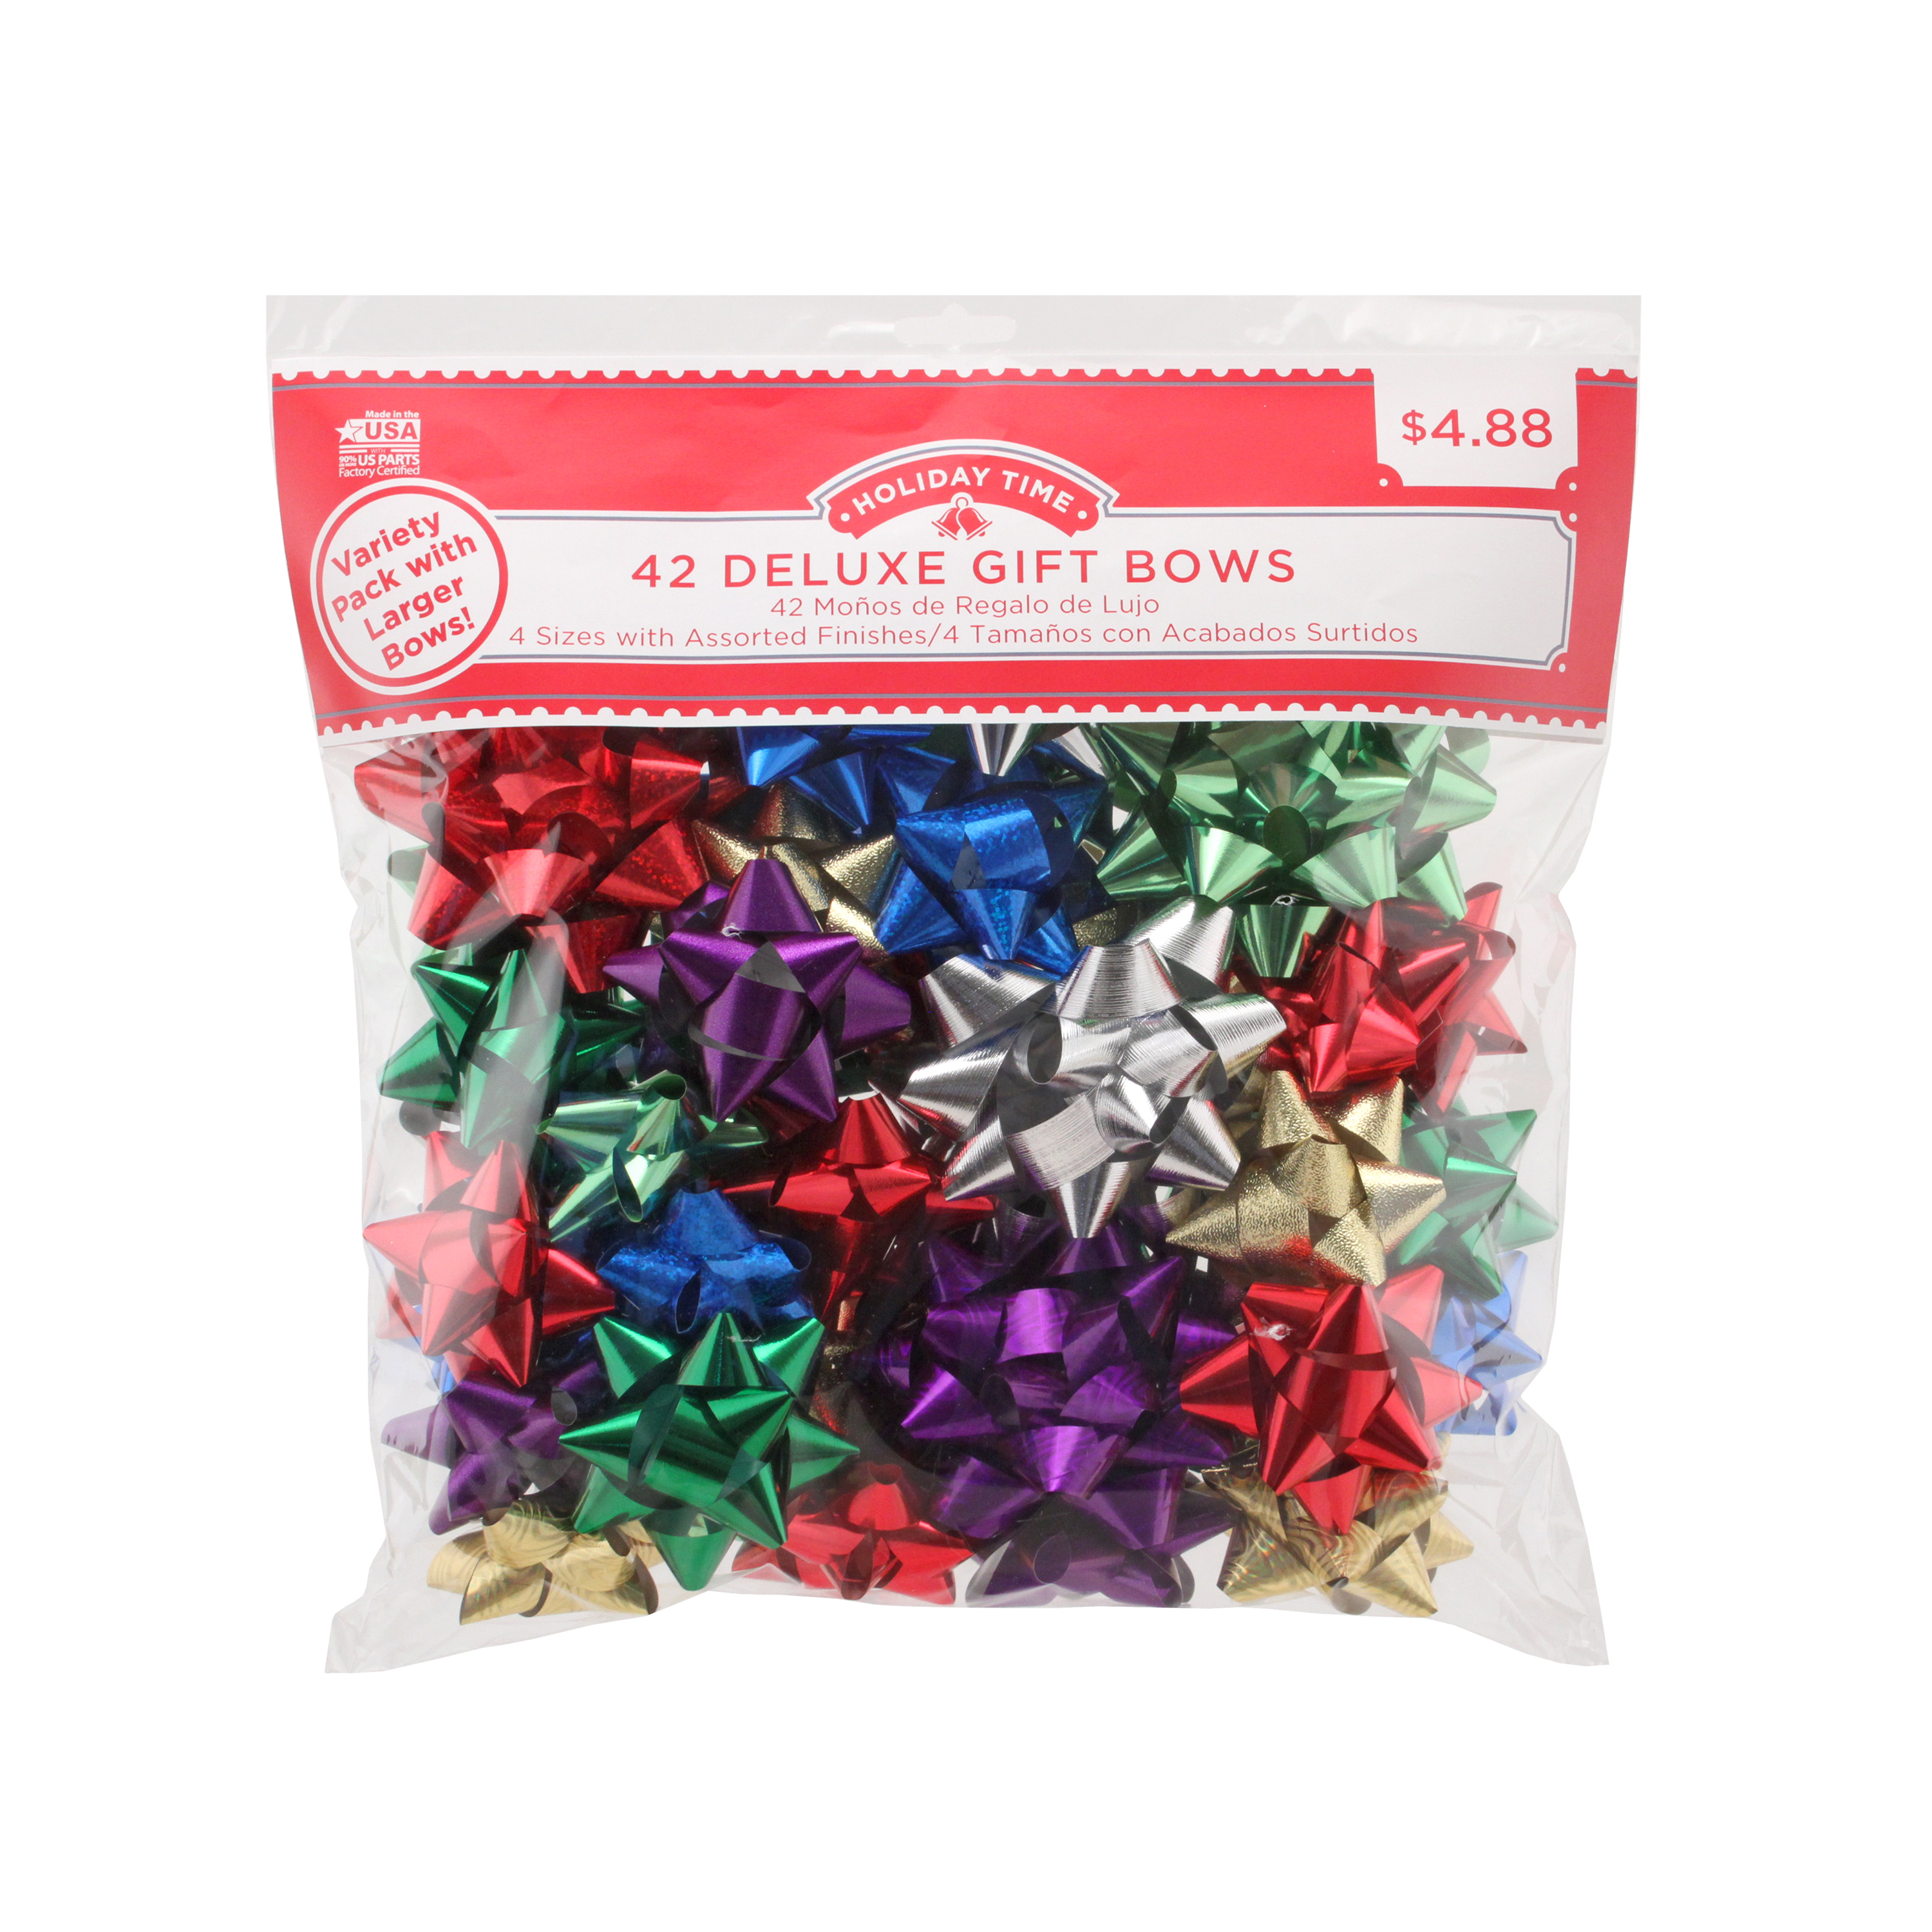 42 COUNT GIFT BOW ASSORTMENT - MULTI